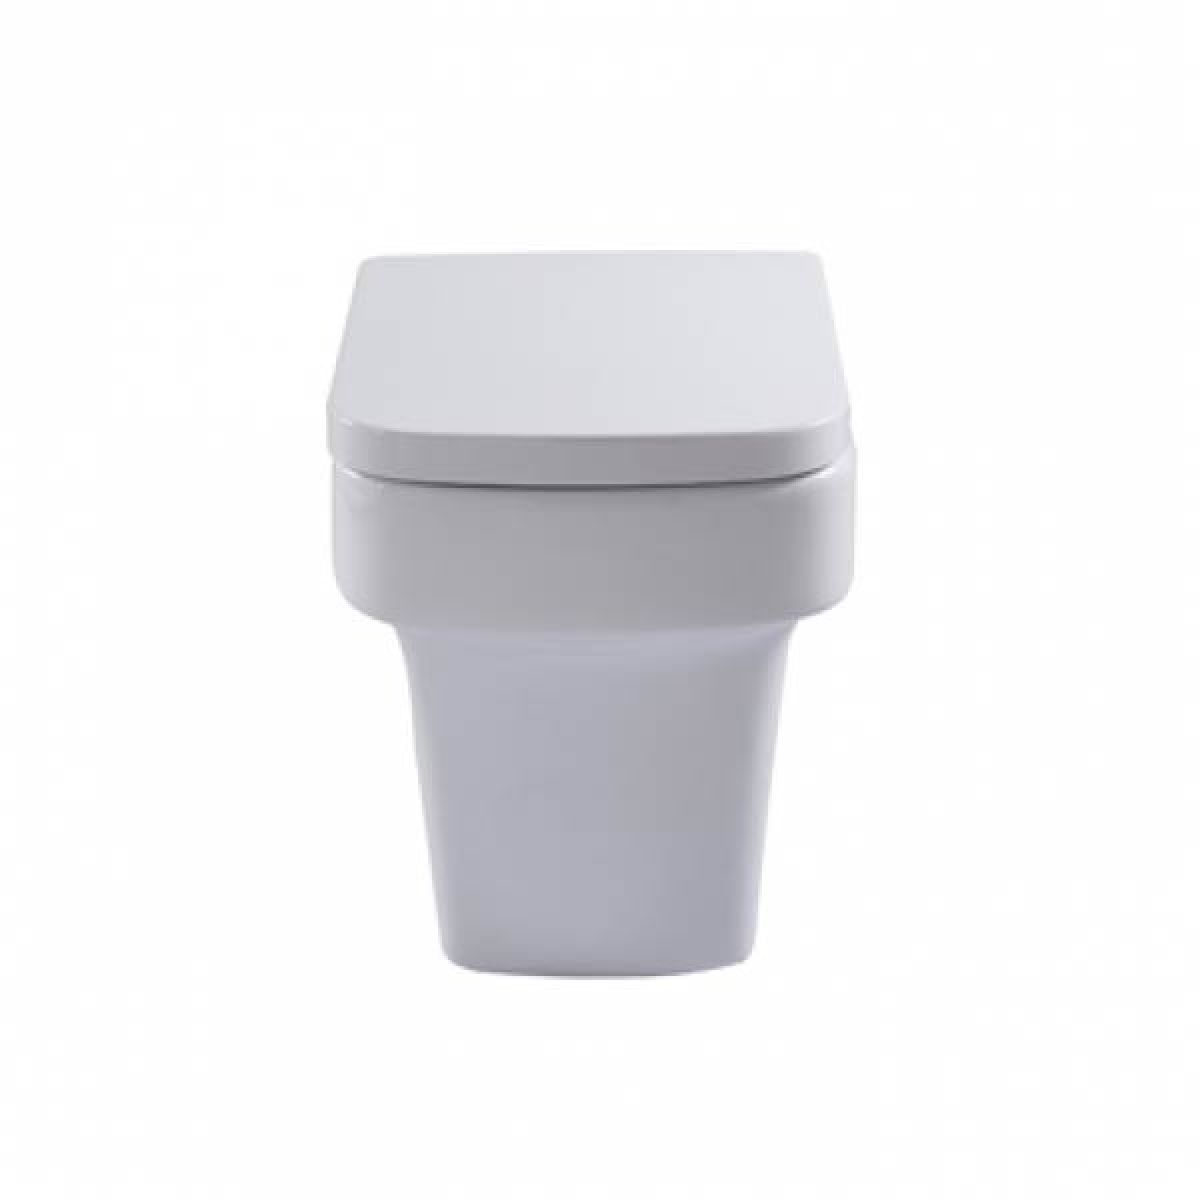 Frontline Medici Back To Wall Toilet with Soft Close Seat